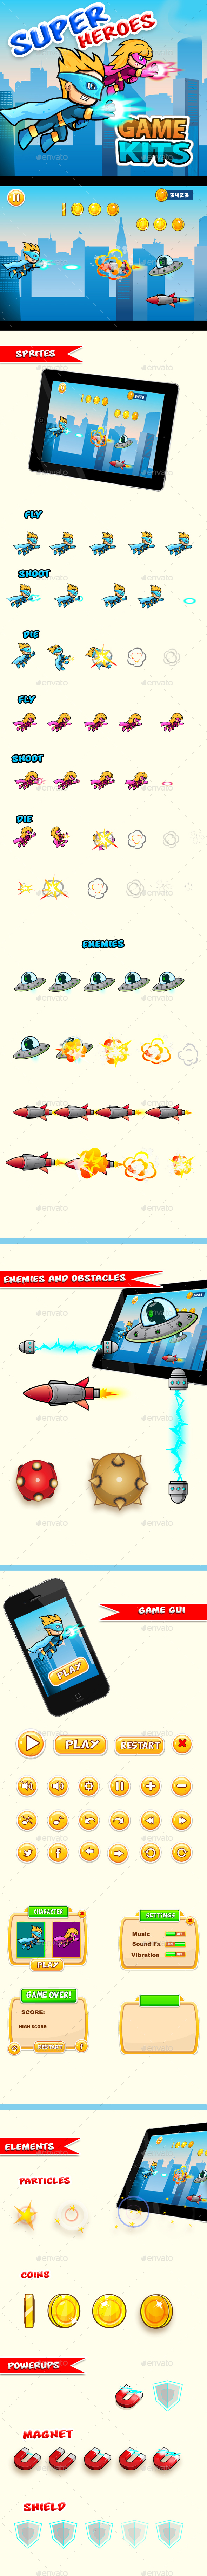 Super Heroes Side Scrolling Game Assets - Game Kits Game Assets